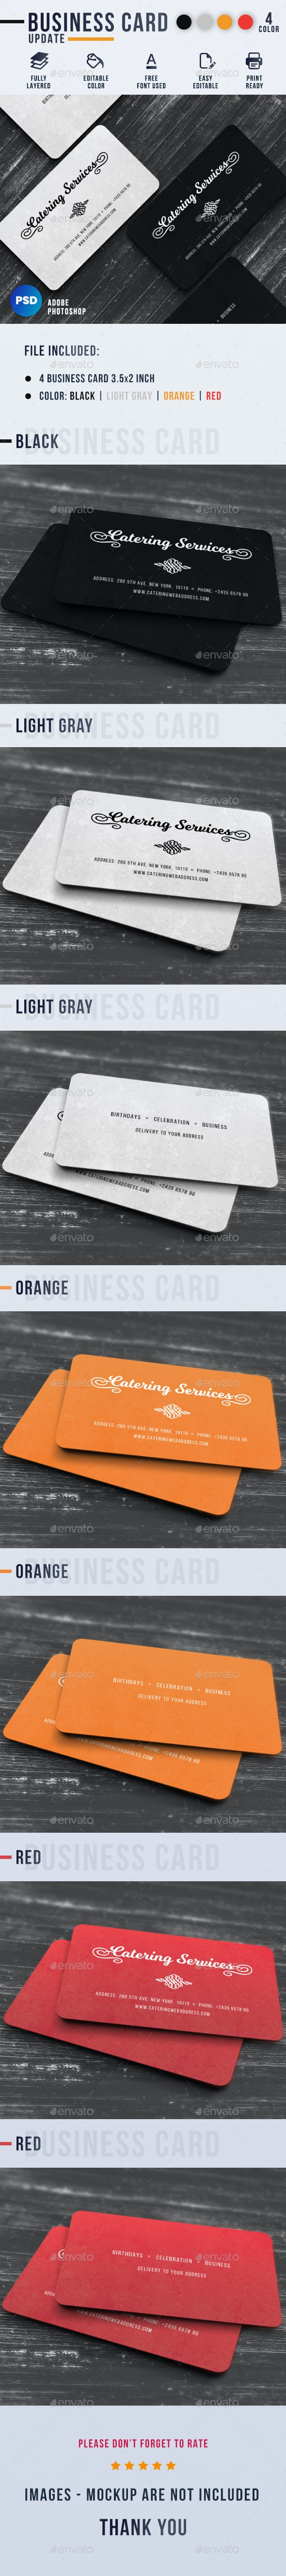 Catering Services Business Card - Industry Specific Business Cards